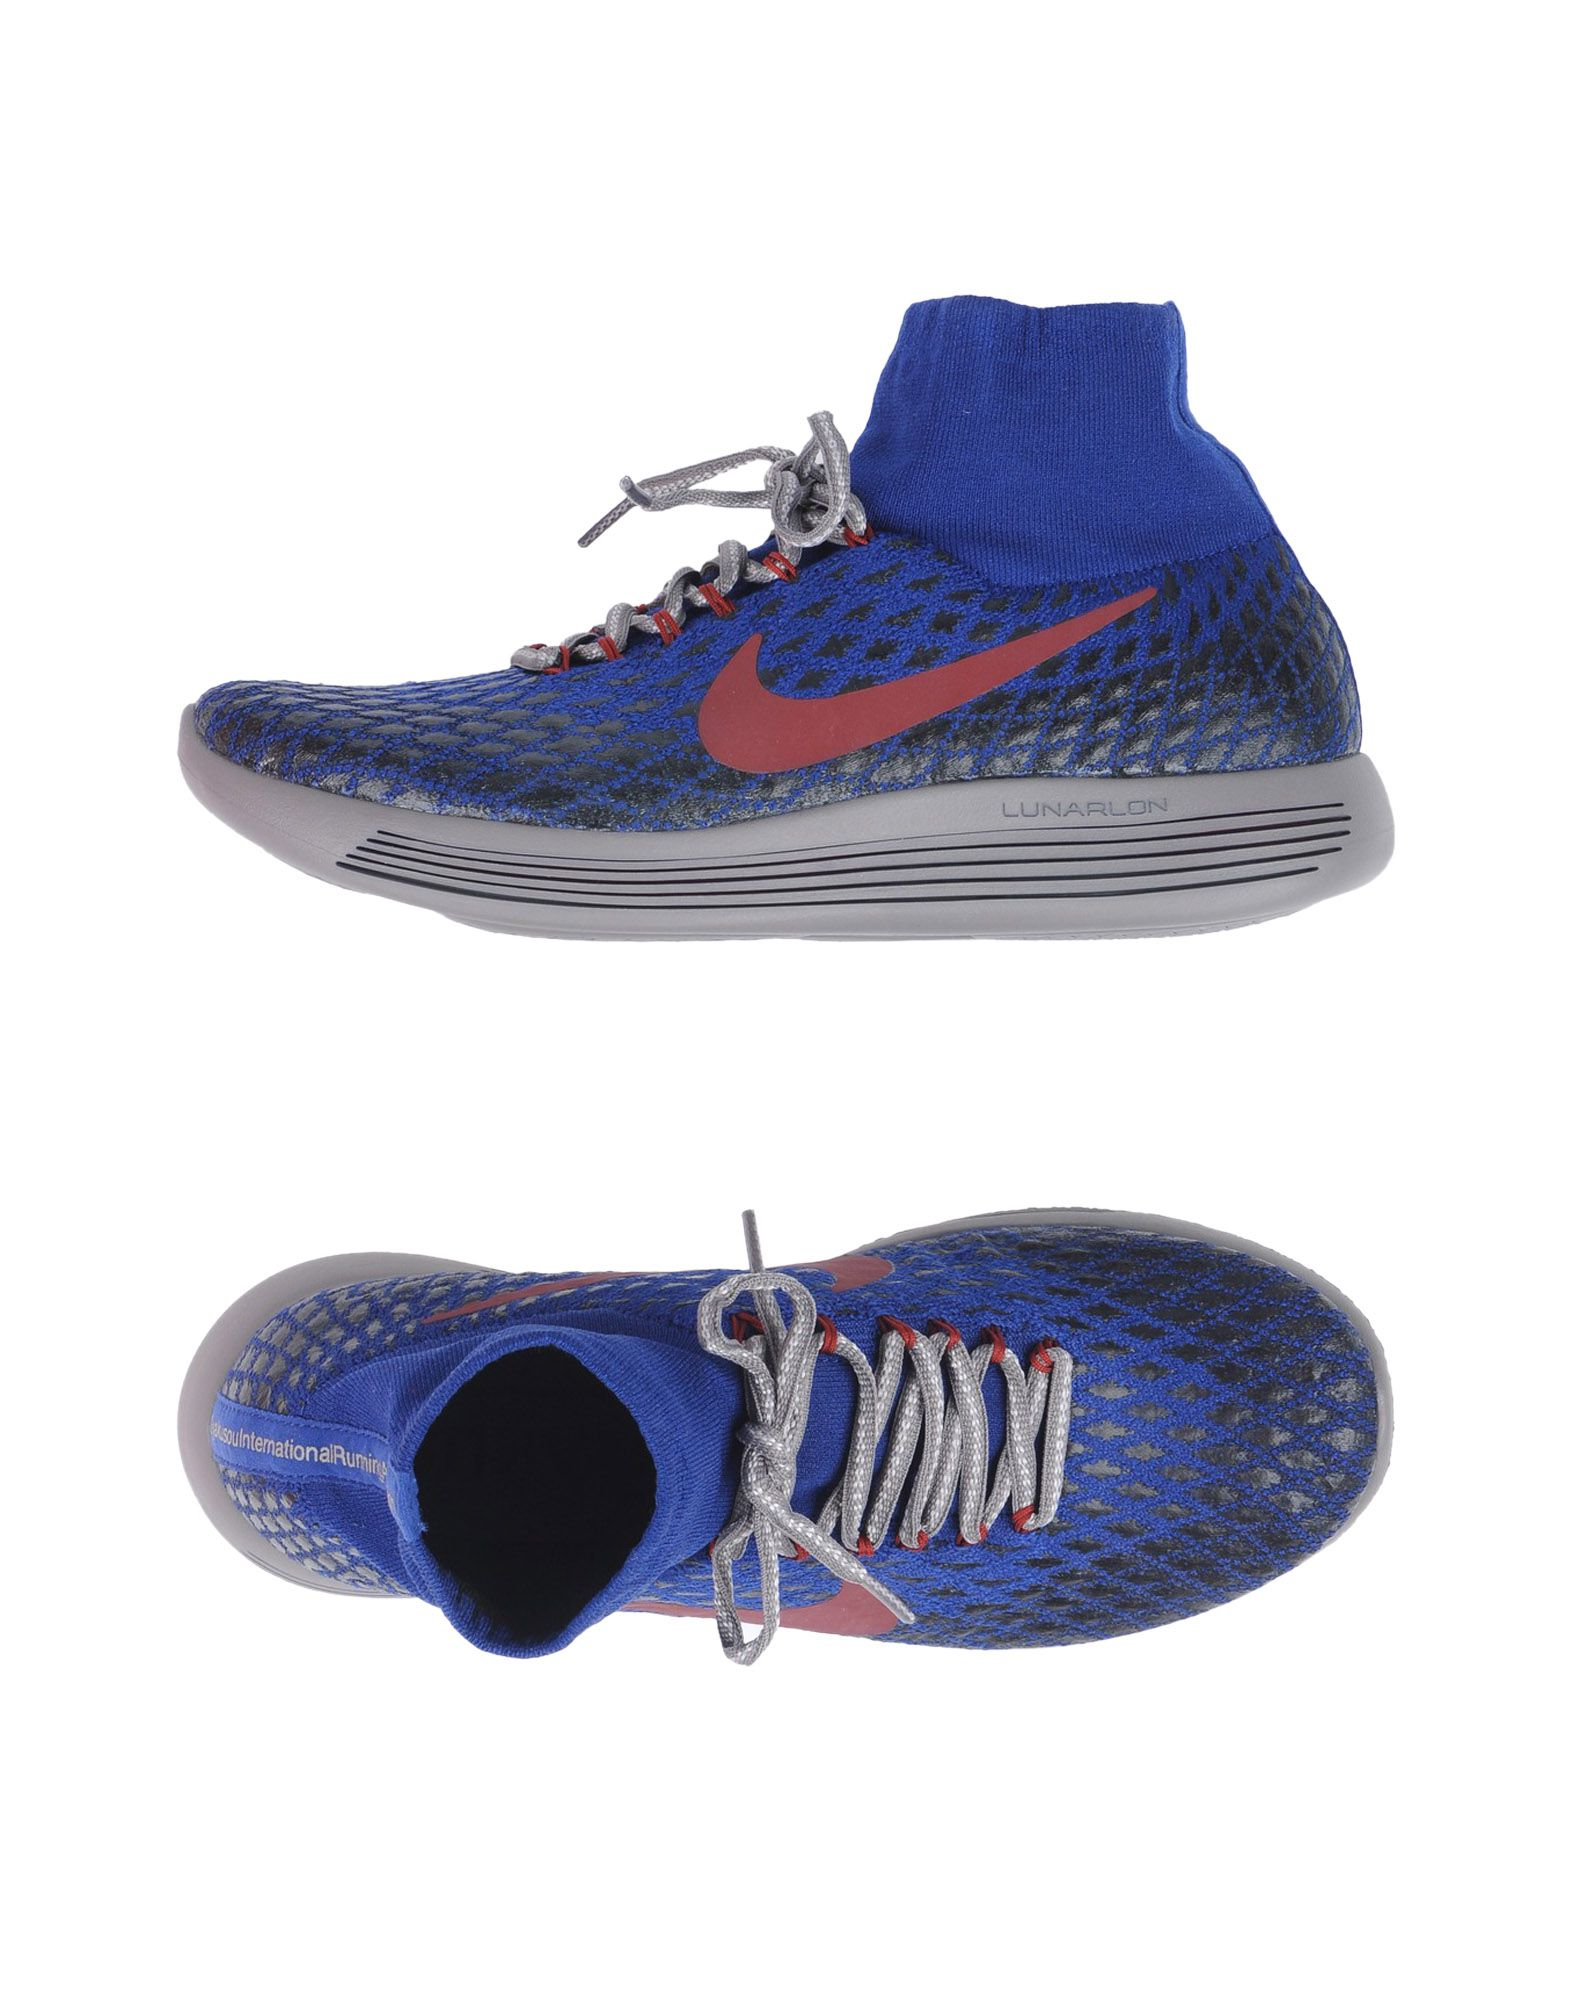 SOLD OUT         Sneakers Nike Donna - Acquista online su